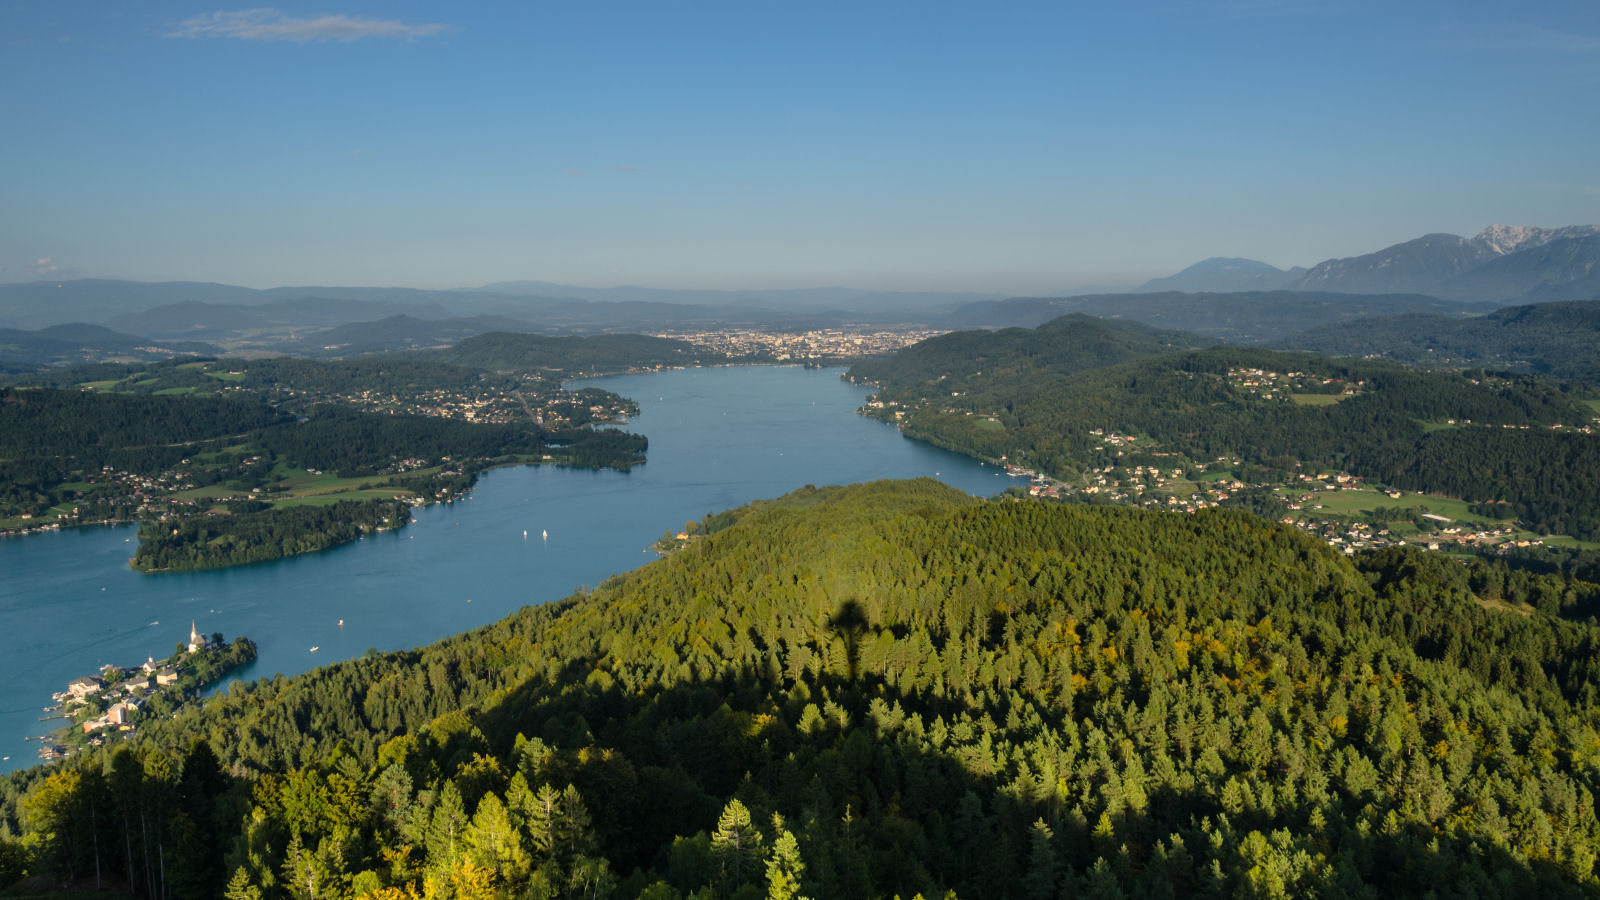 You can see the entire Lake Wörthersee and beyond and admire the beautiful landscape